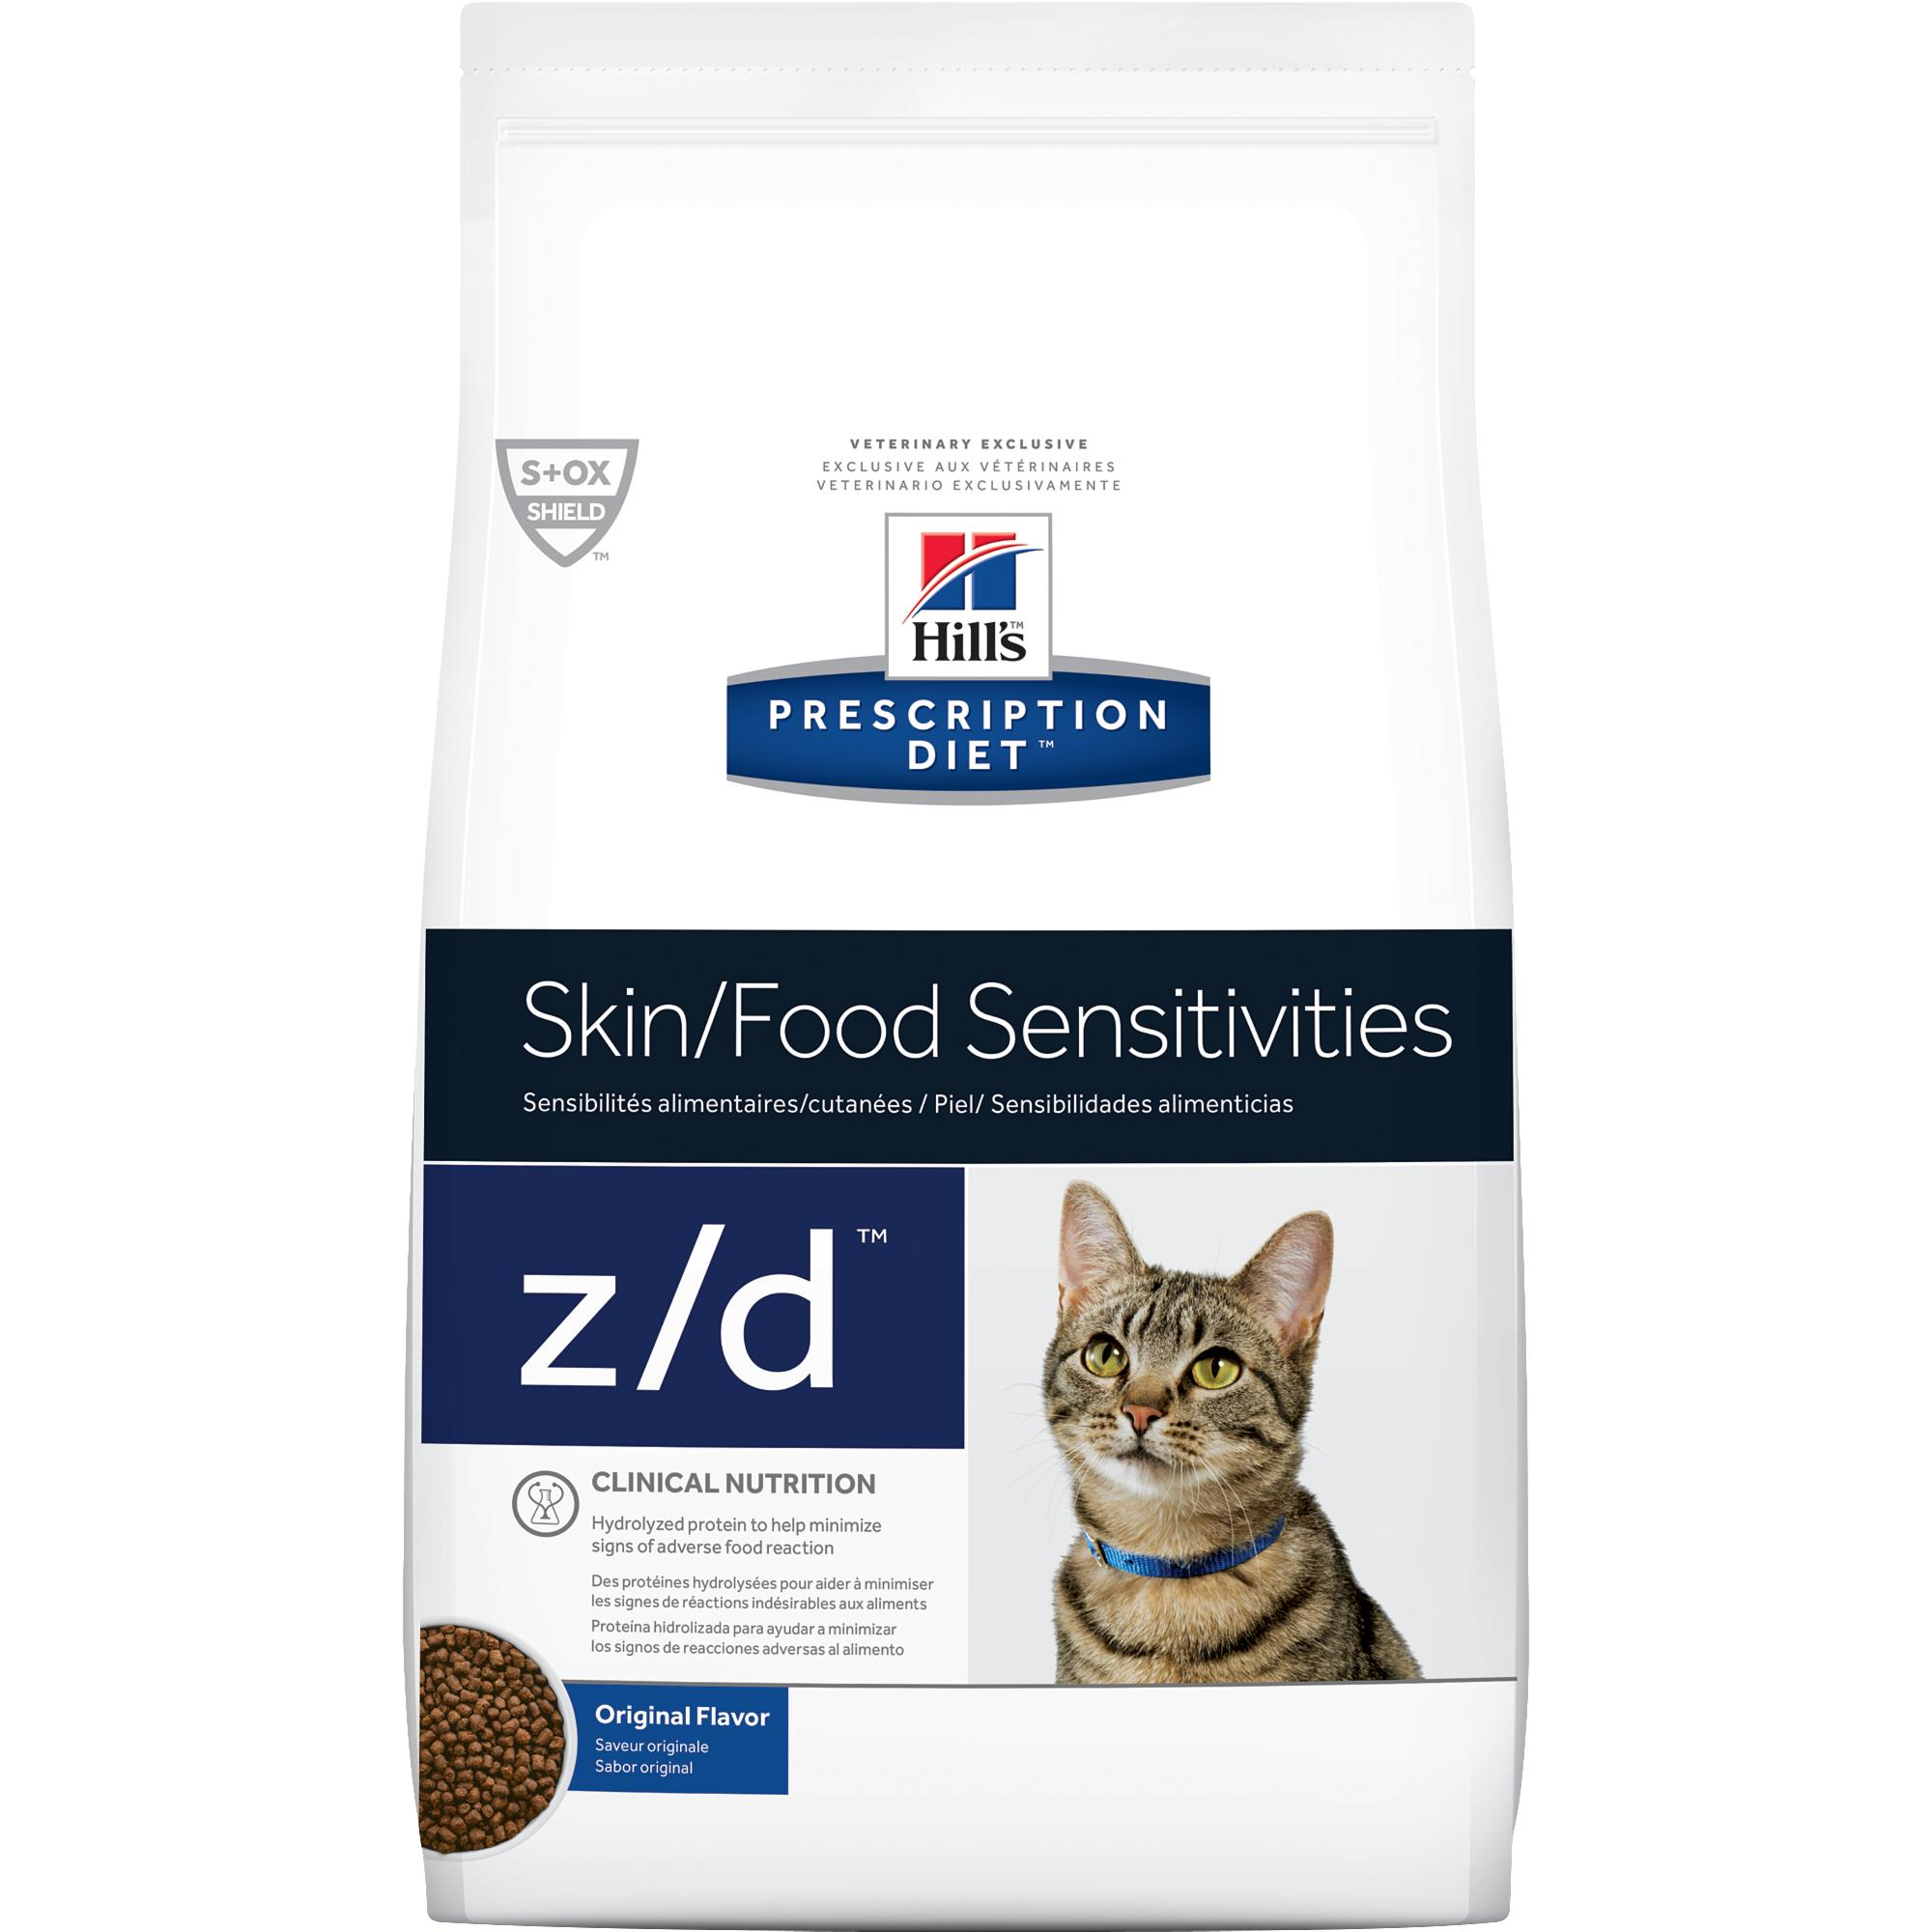 Hill's Prescription Diet z/d Feline Skin & Food Sensitivities 8728 at NJPetSupply.com